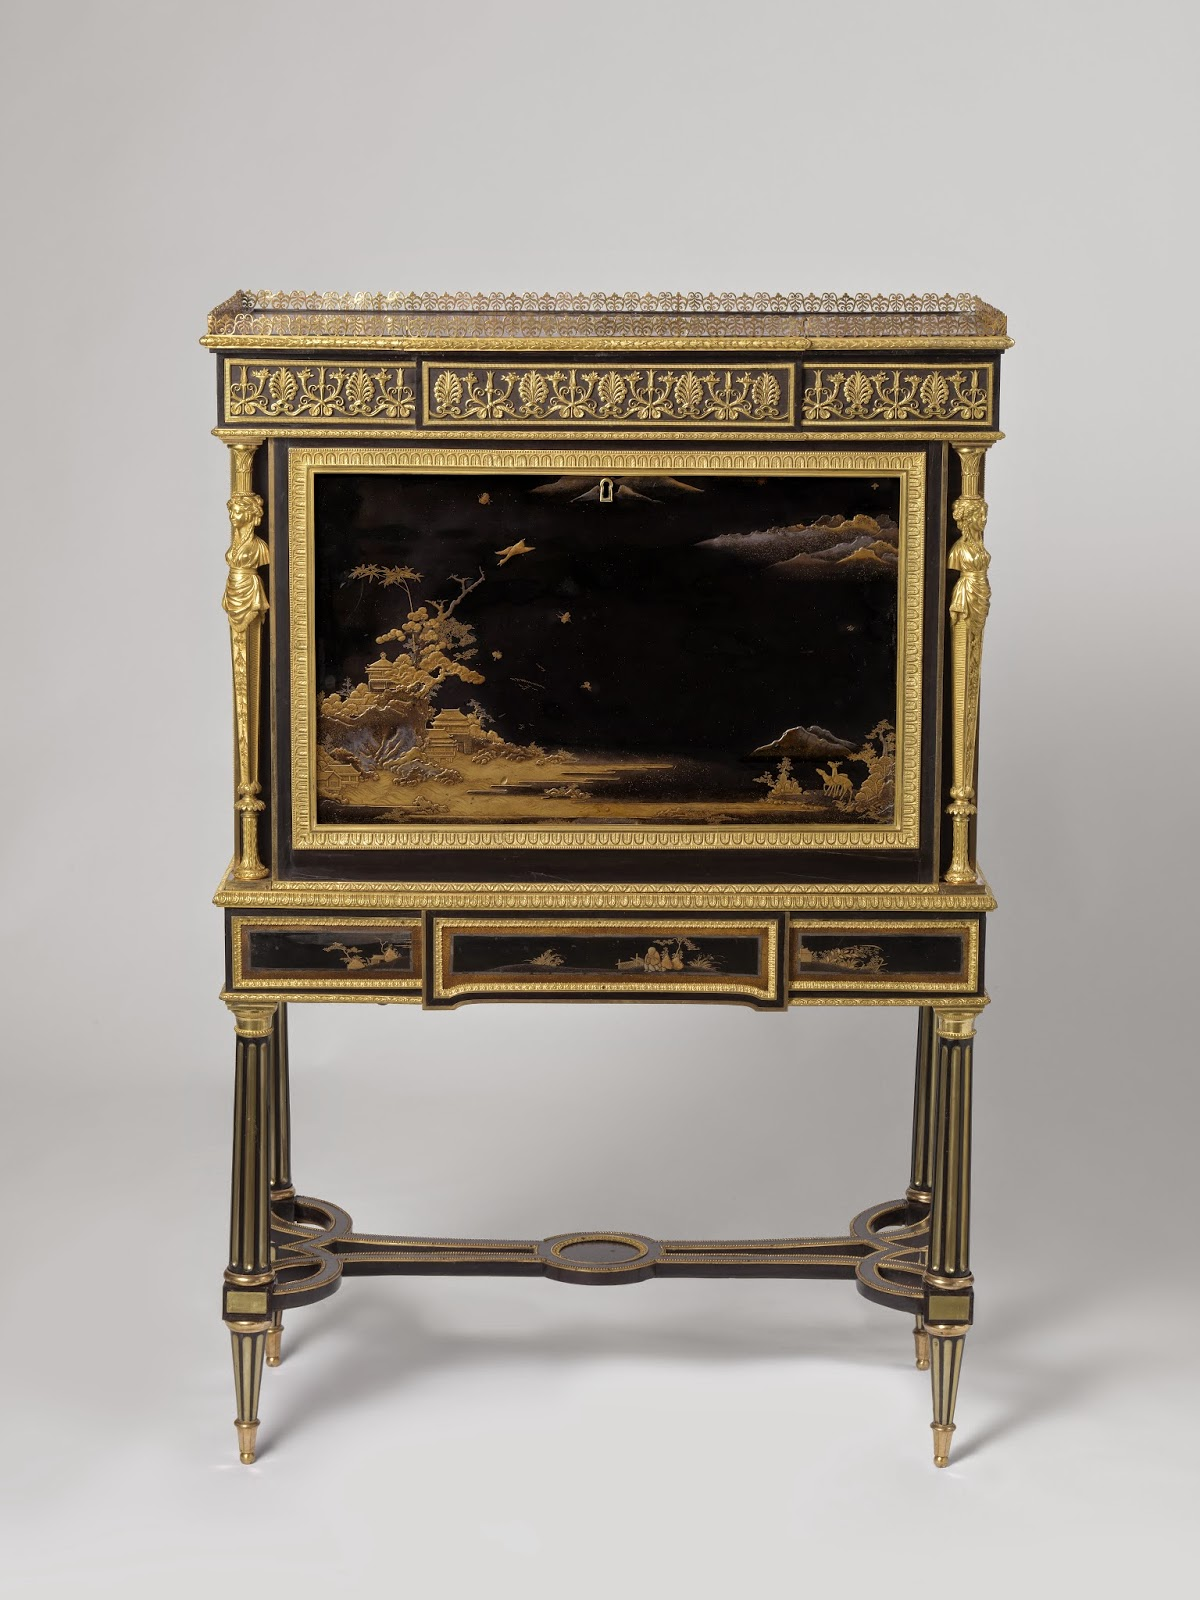 Drop-front secretary (secrétaire à abattant), attributed to Adam Weisweiler, c. 1790 - c. 1795